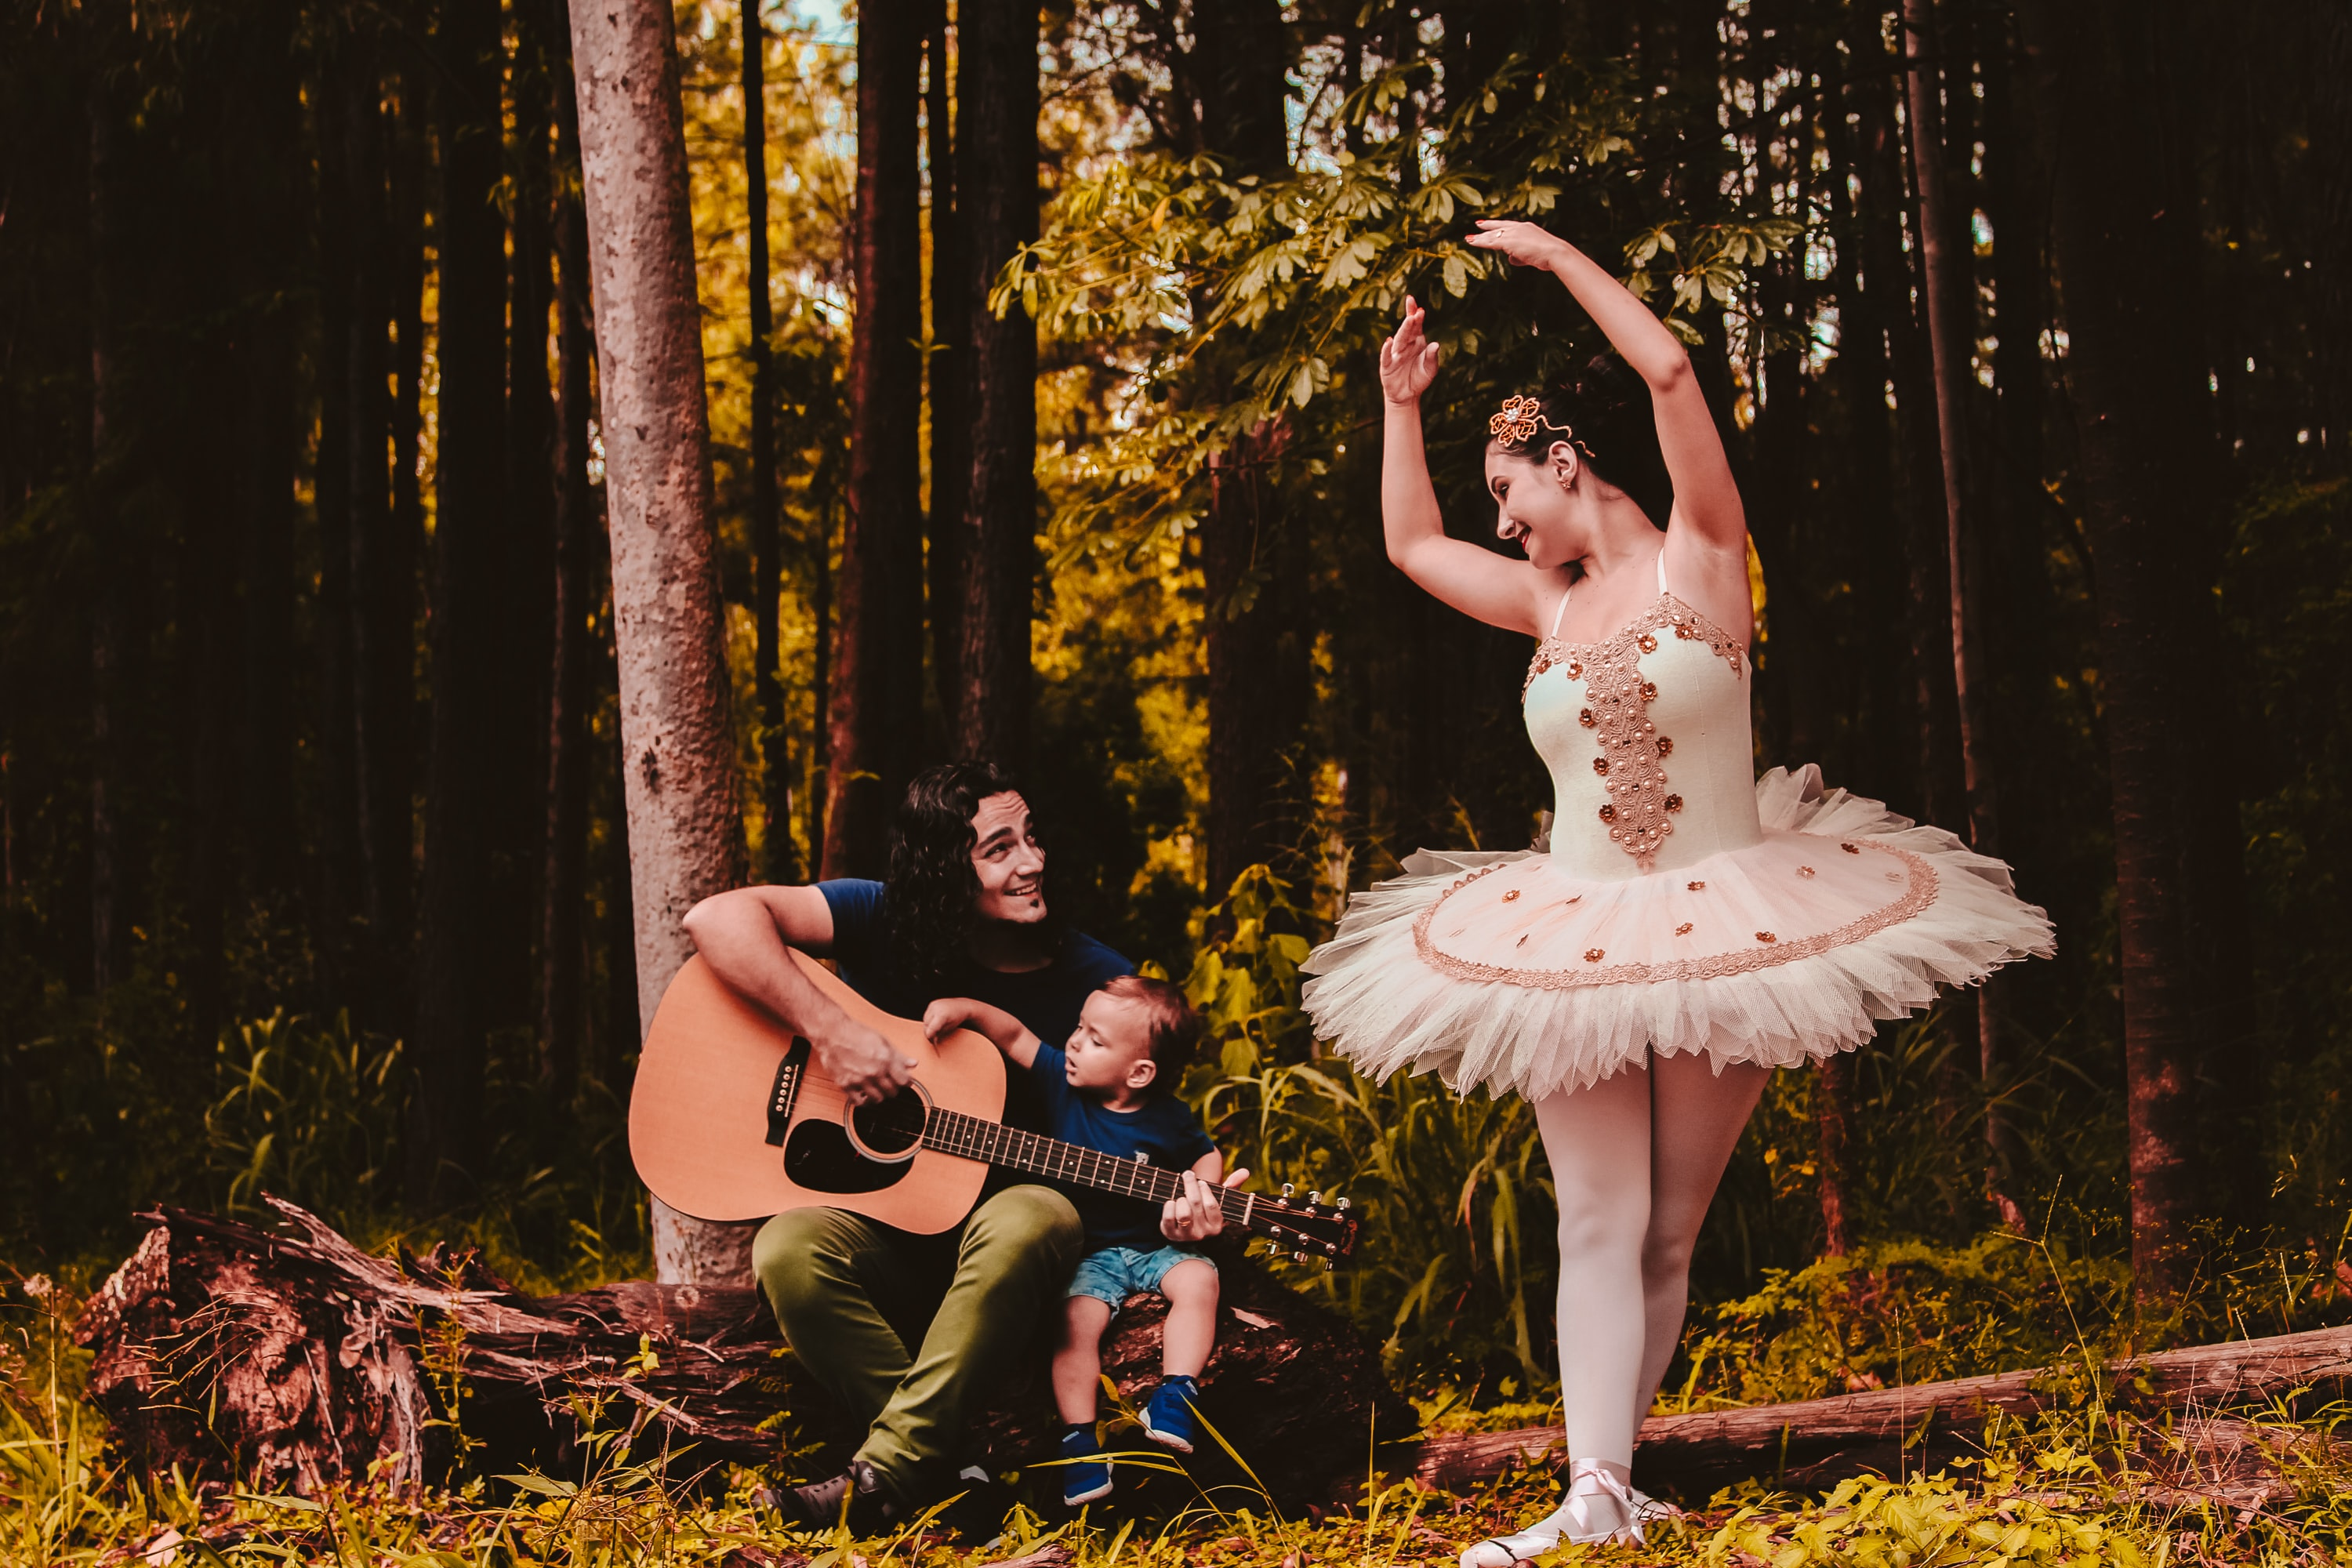 man sitting beside toddler boy while playing guitar and looking at the woman in ballerina dress in the woods